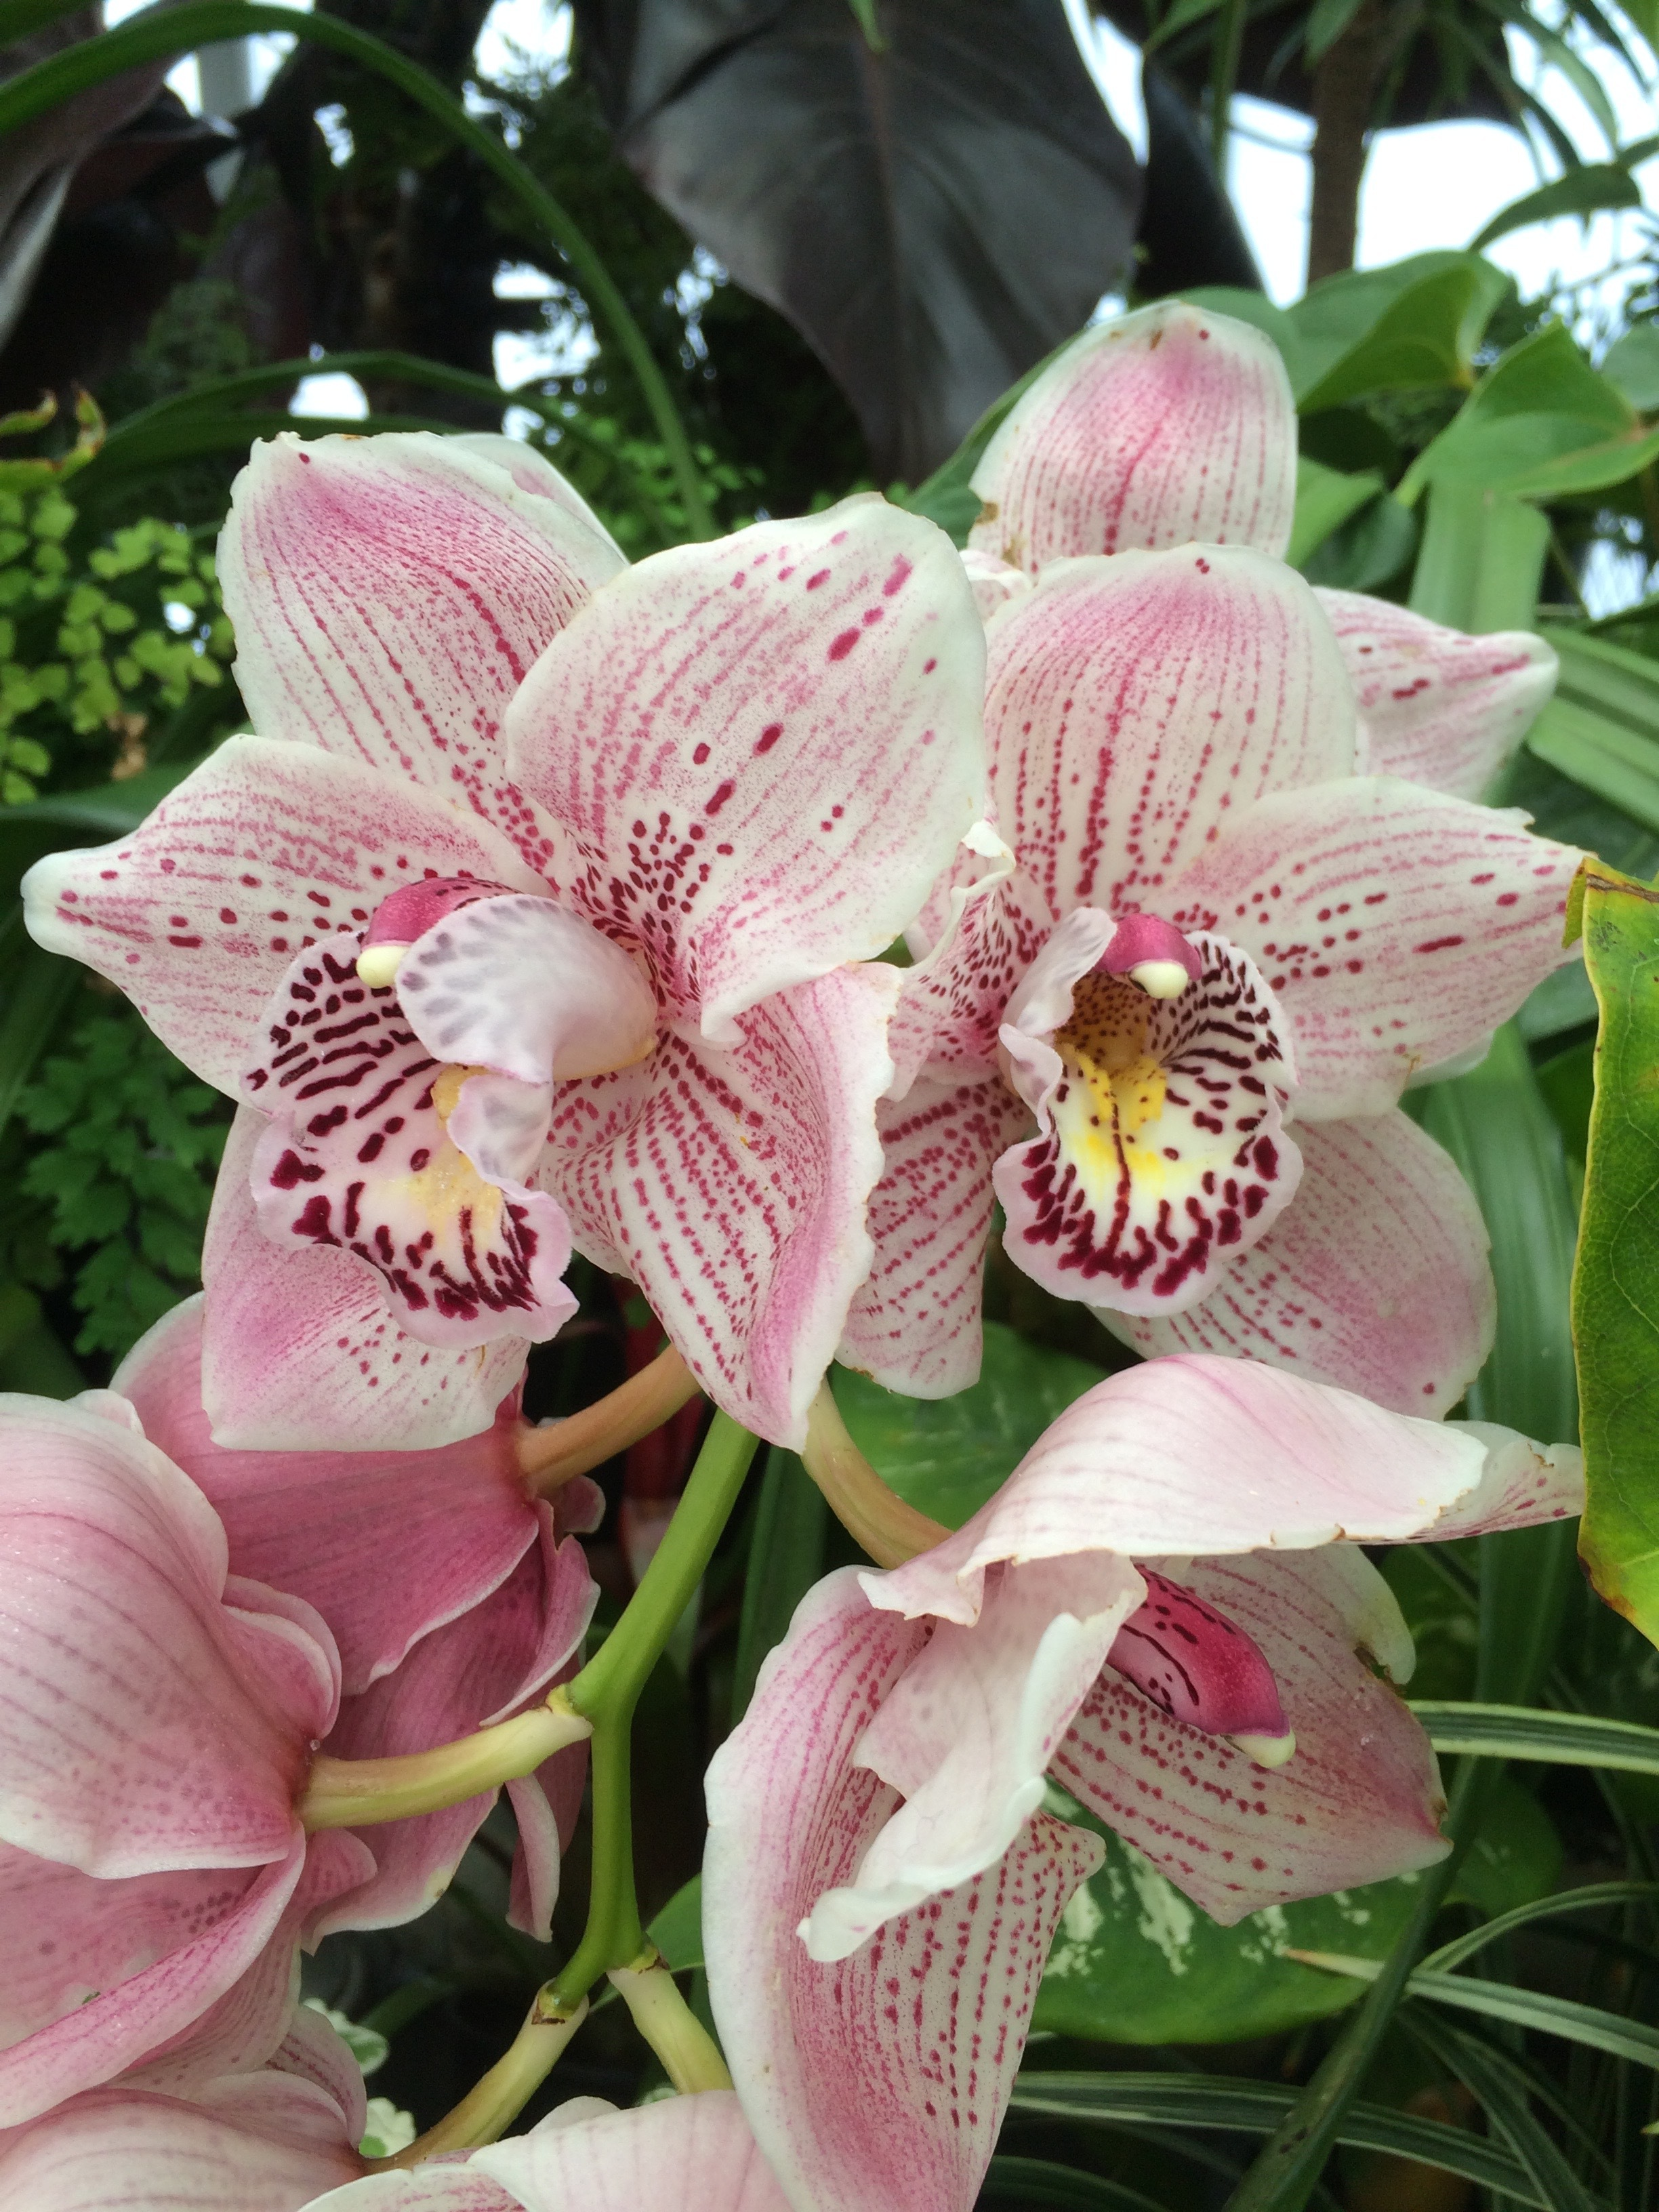 Moena's favourite orchids from her garden